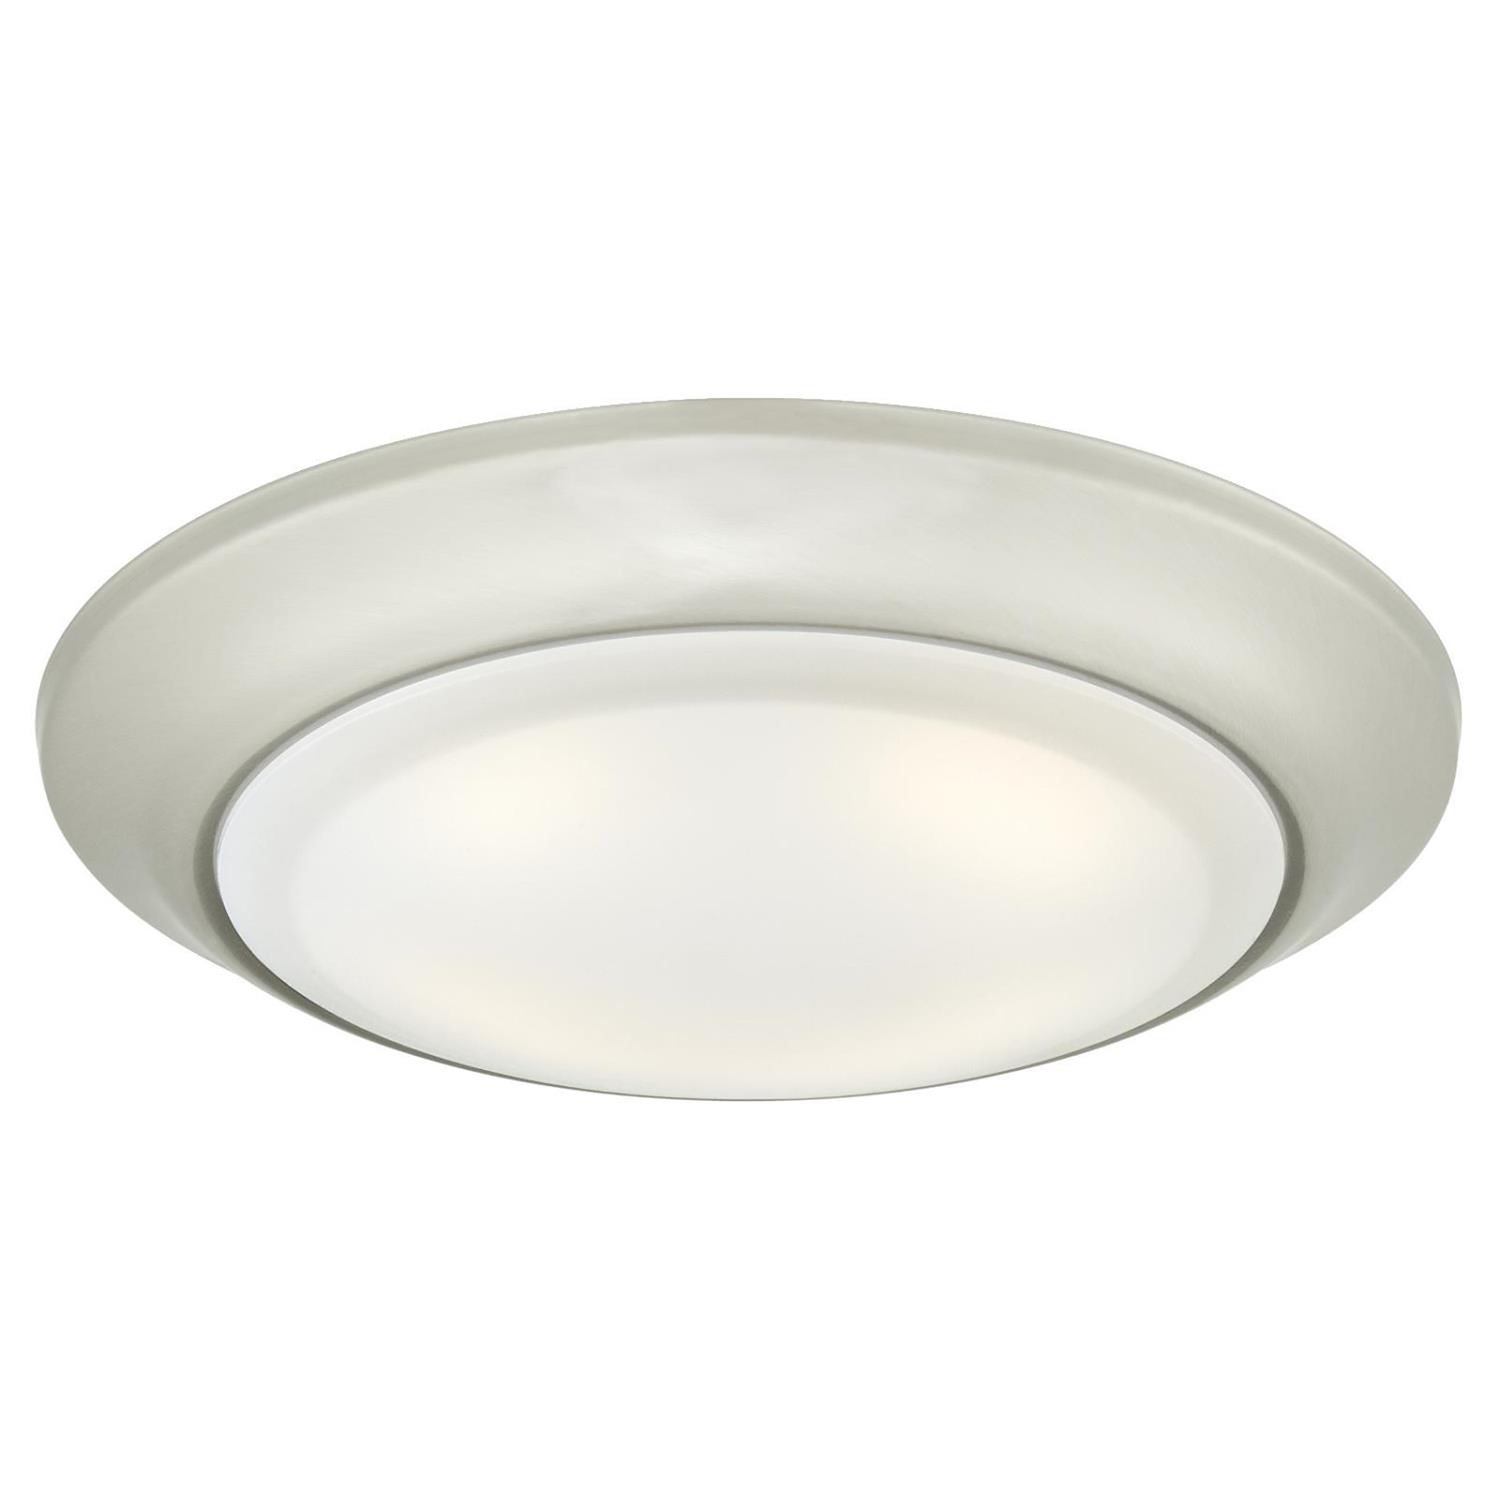 Westinghouse  Metallic  Brushed Nickel  Steel  Recessed Light Fixture  LED  5.5 in. W